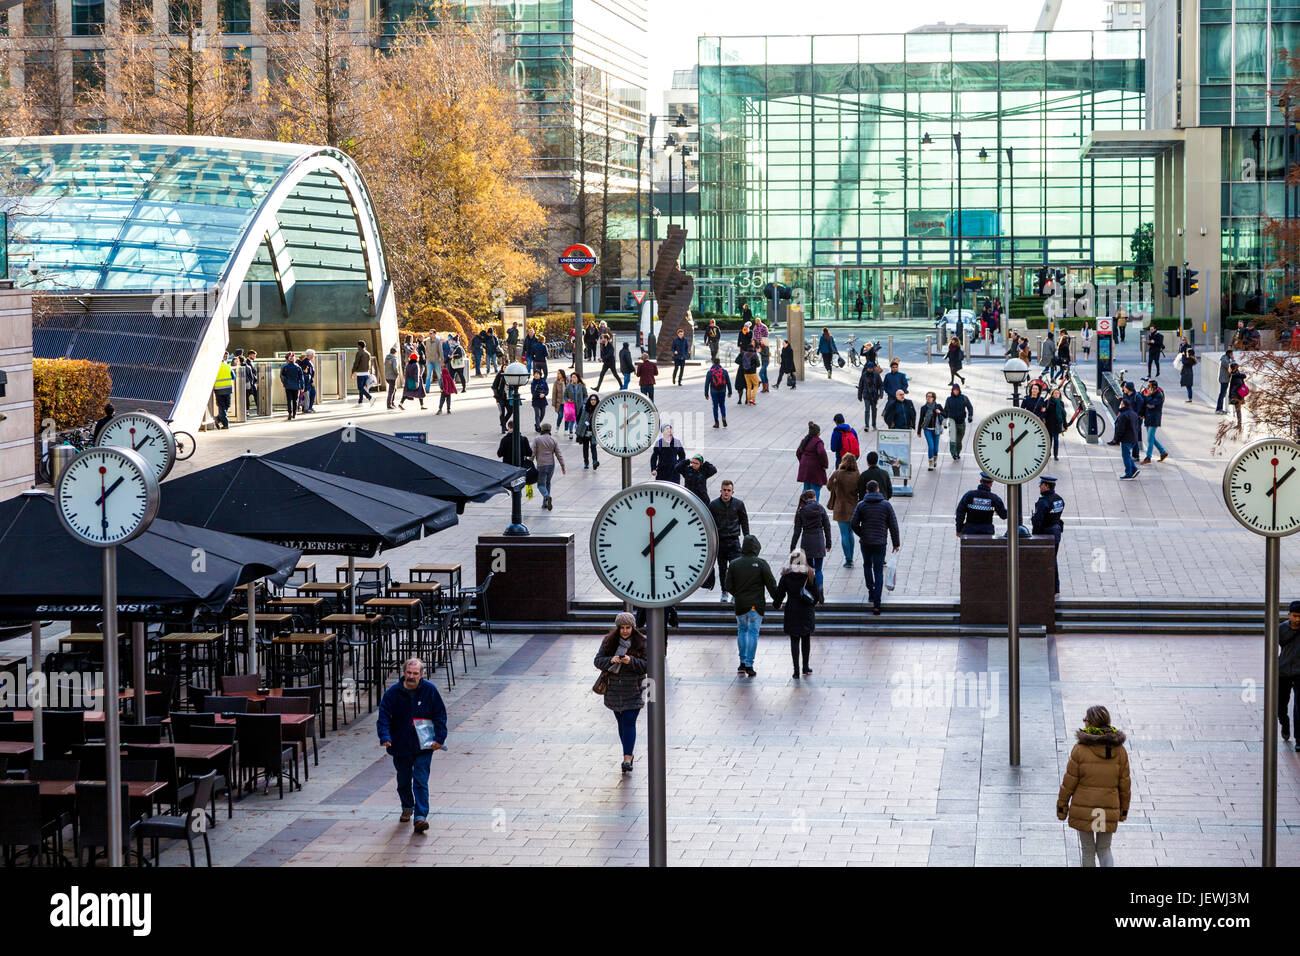 People walking in Reuters Plaza and Jubilee Plaza in Canary Wharf and public installation 'Six Public Clocks' - Stock Image